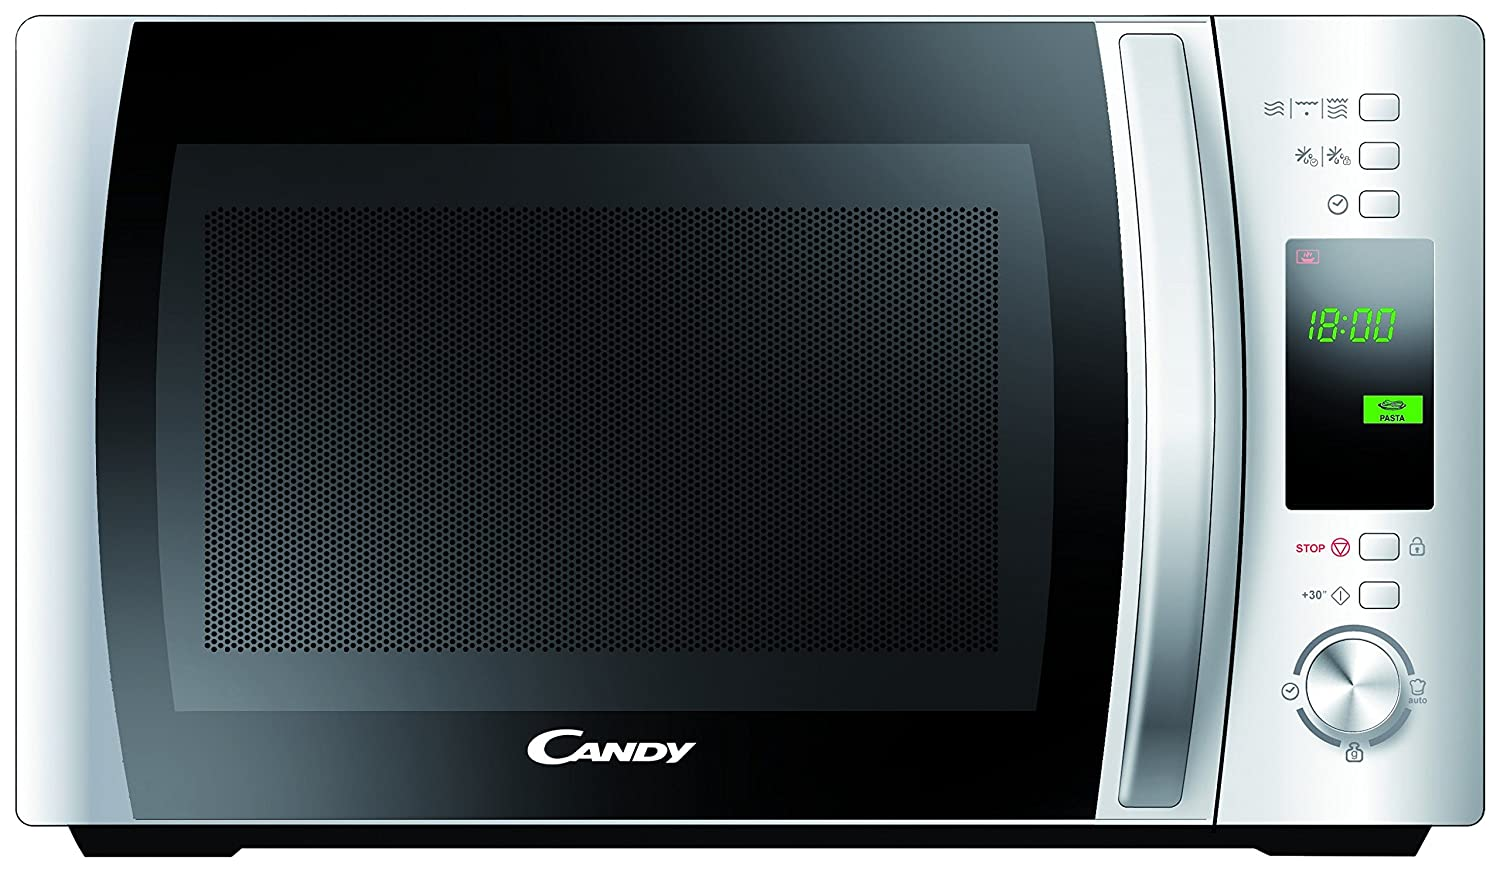 Candy CMWC 20 DW-Microondas. 20 litros. 800 W. Display Digital. Cooking Surround Technology. Diseño más Moderno y más fácil de Limpiar. Color: Blanco, ...